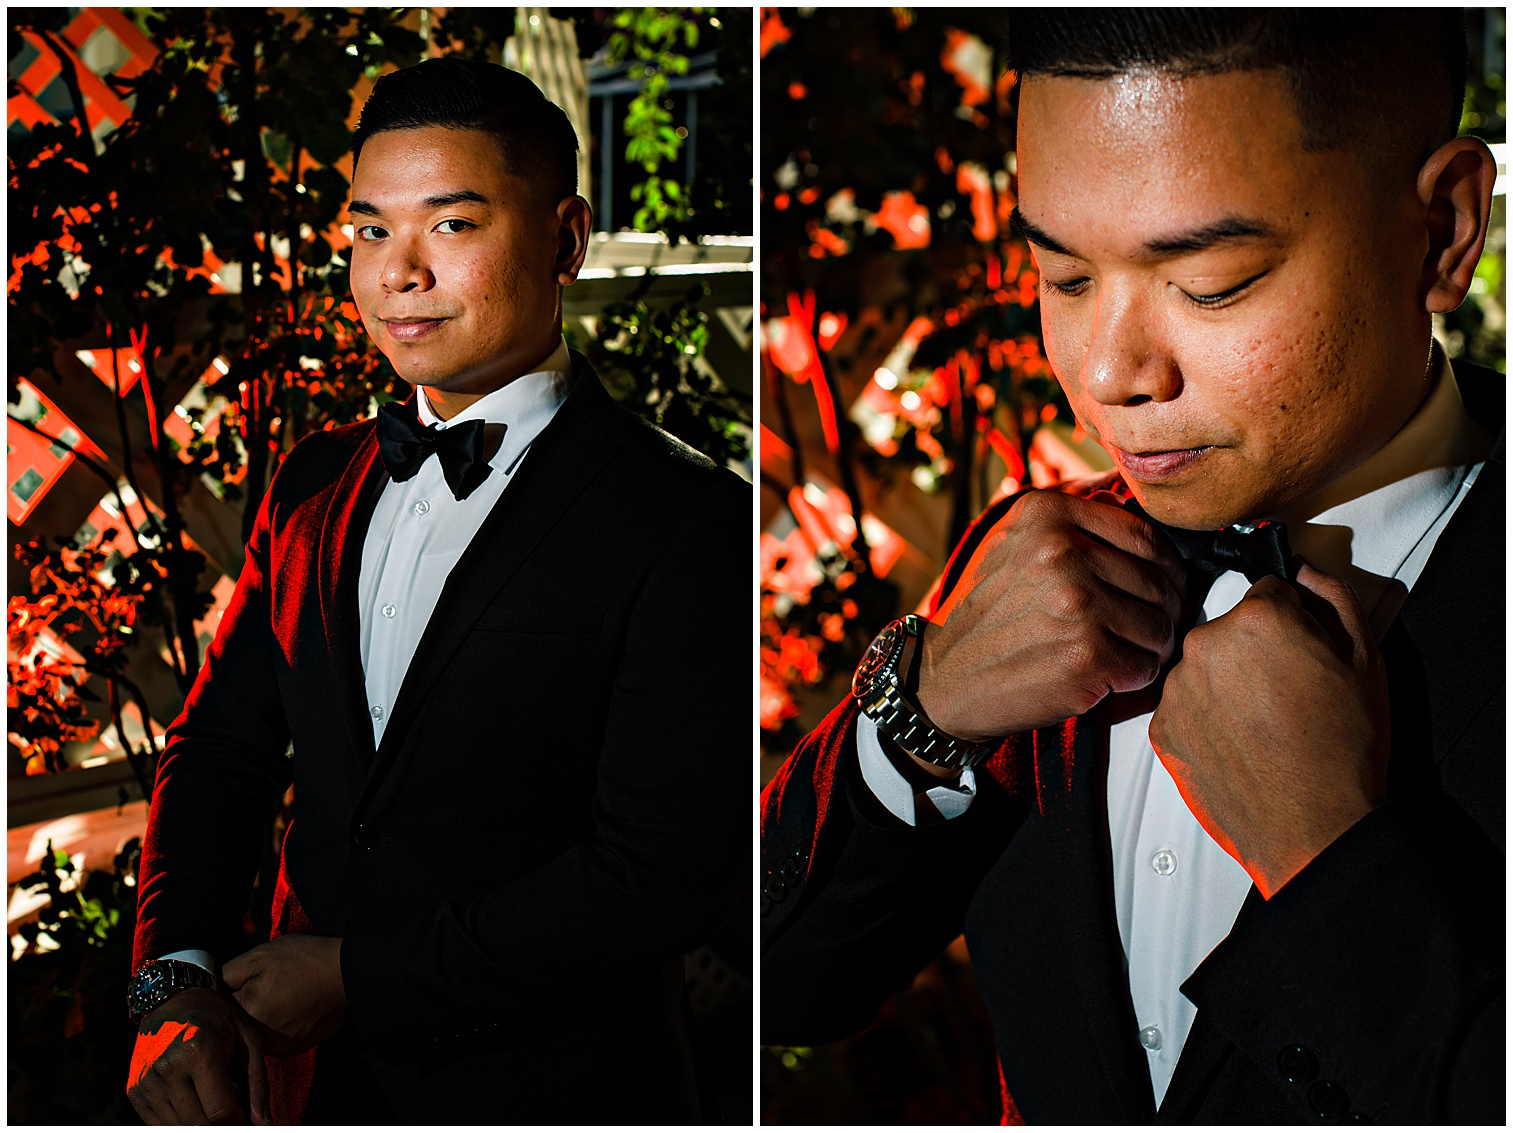 los_angeles_wedding_photographer_1108.jpg